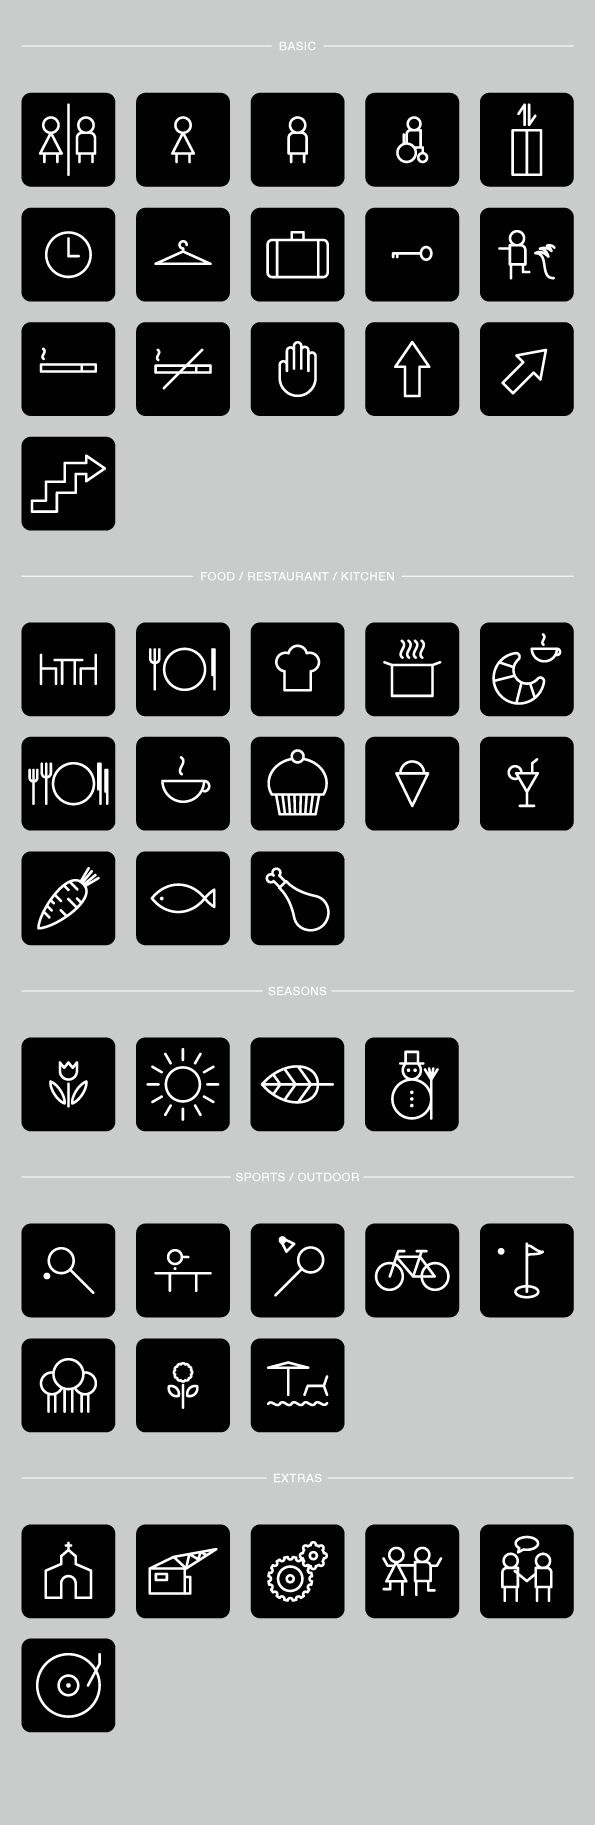 Hotel Pictograms - Full Version by Robert Karpati, via Behance